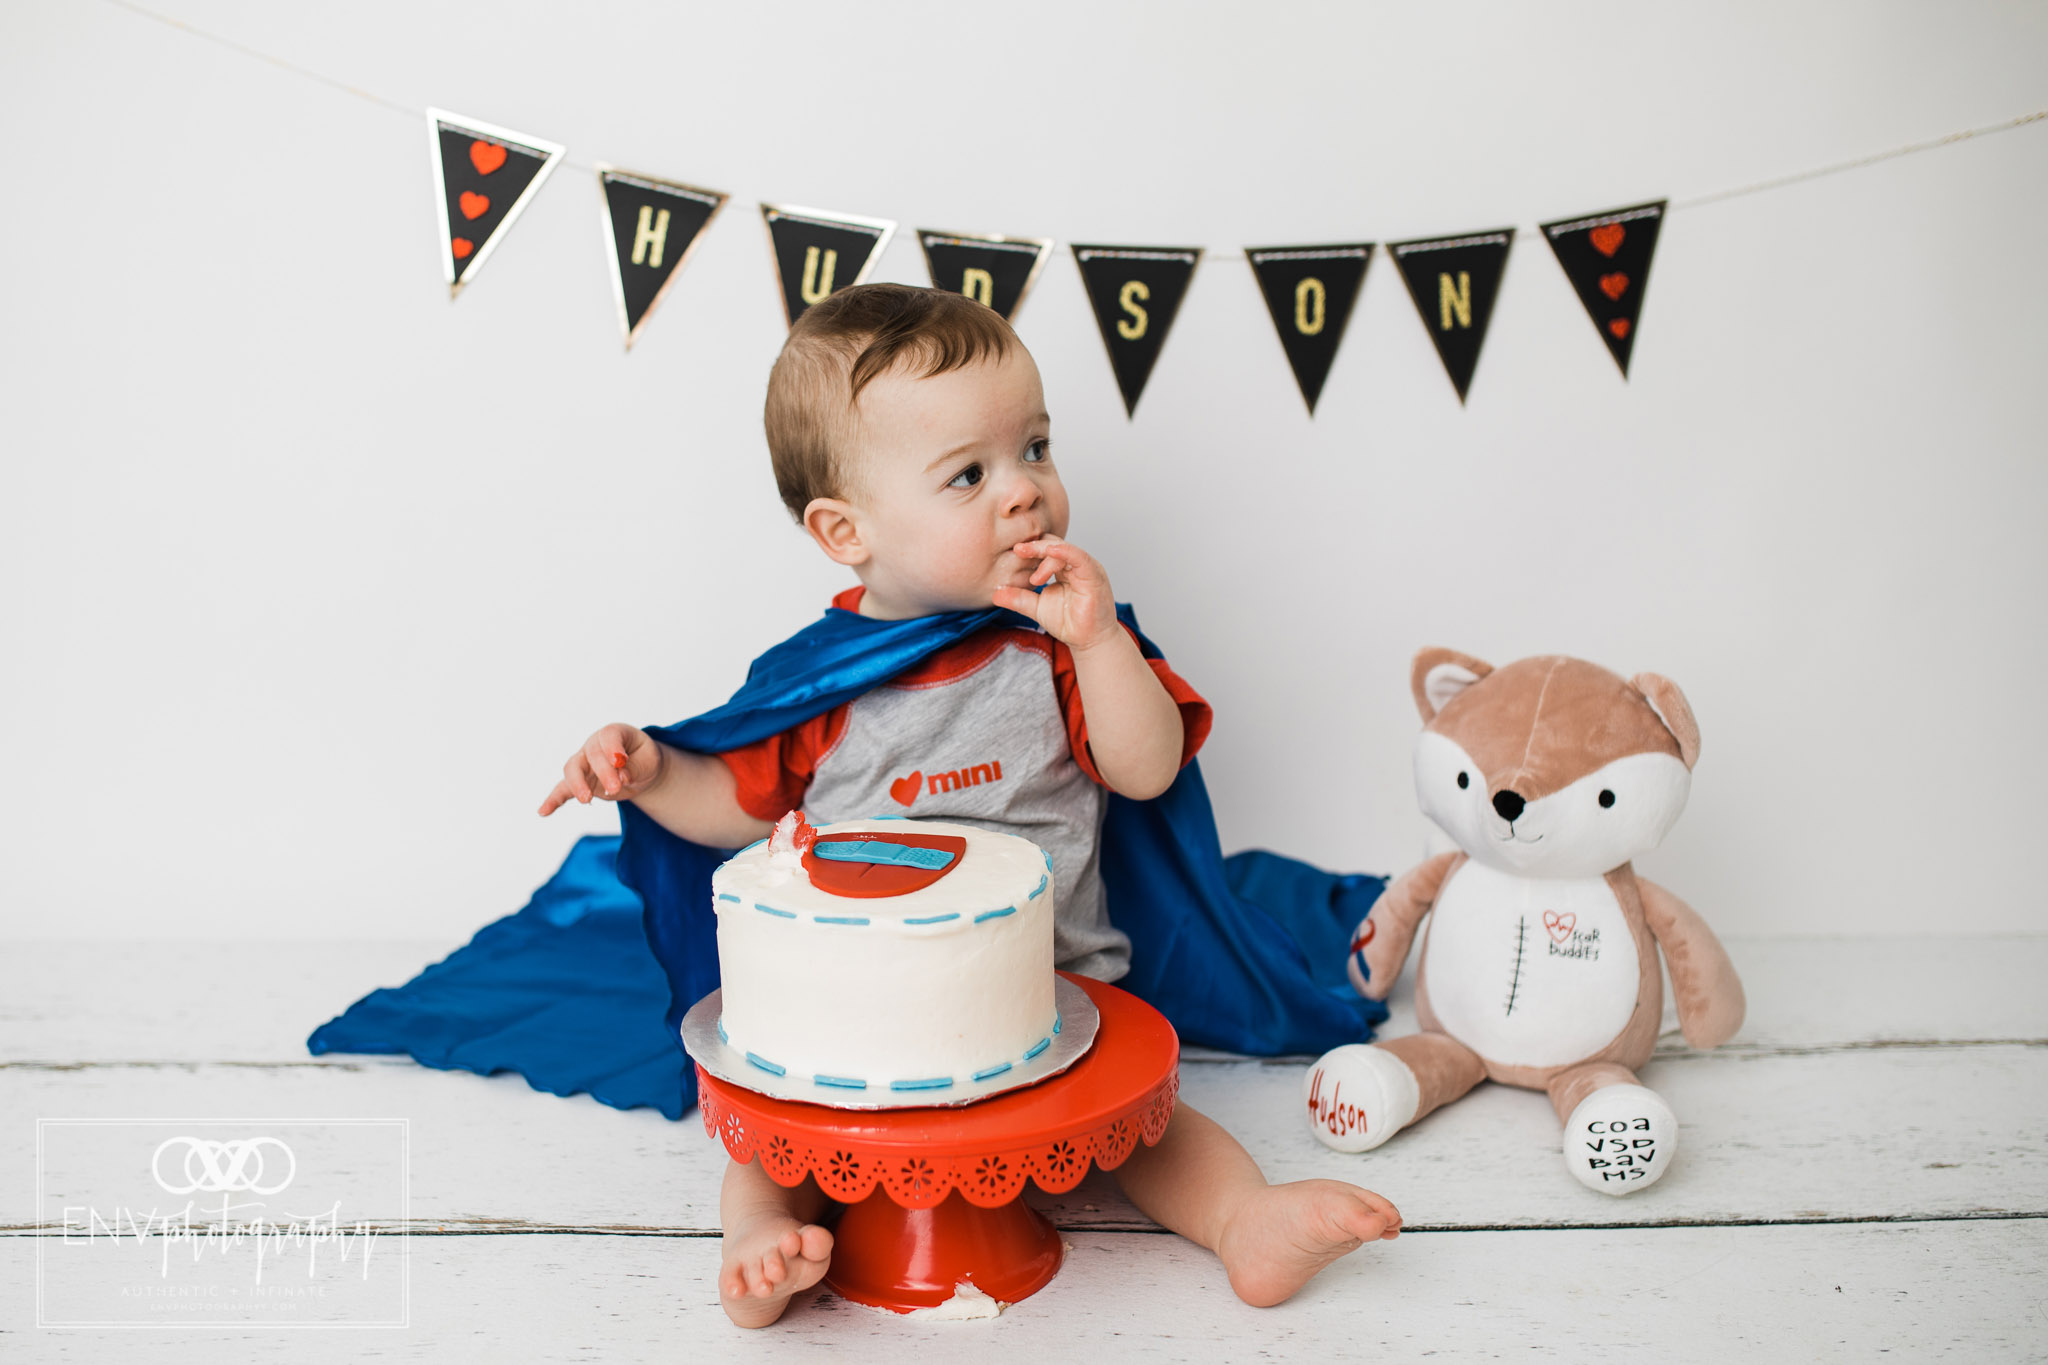 Mount Vernon Columbus Ohio Family Photographer First Birthday Cake Smash (18).jpg